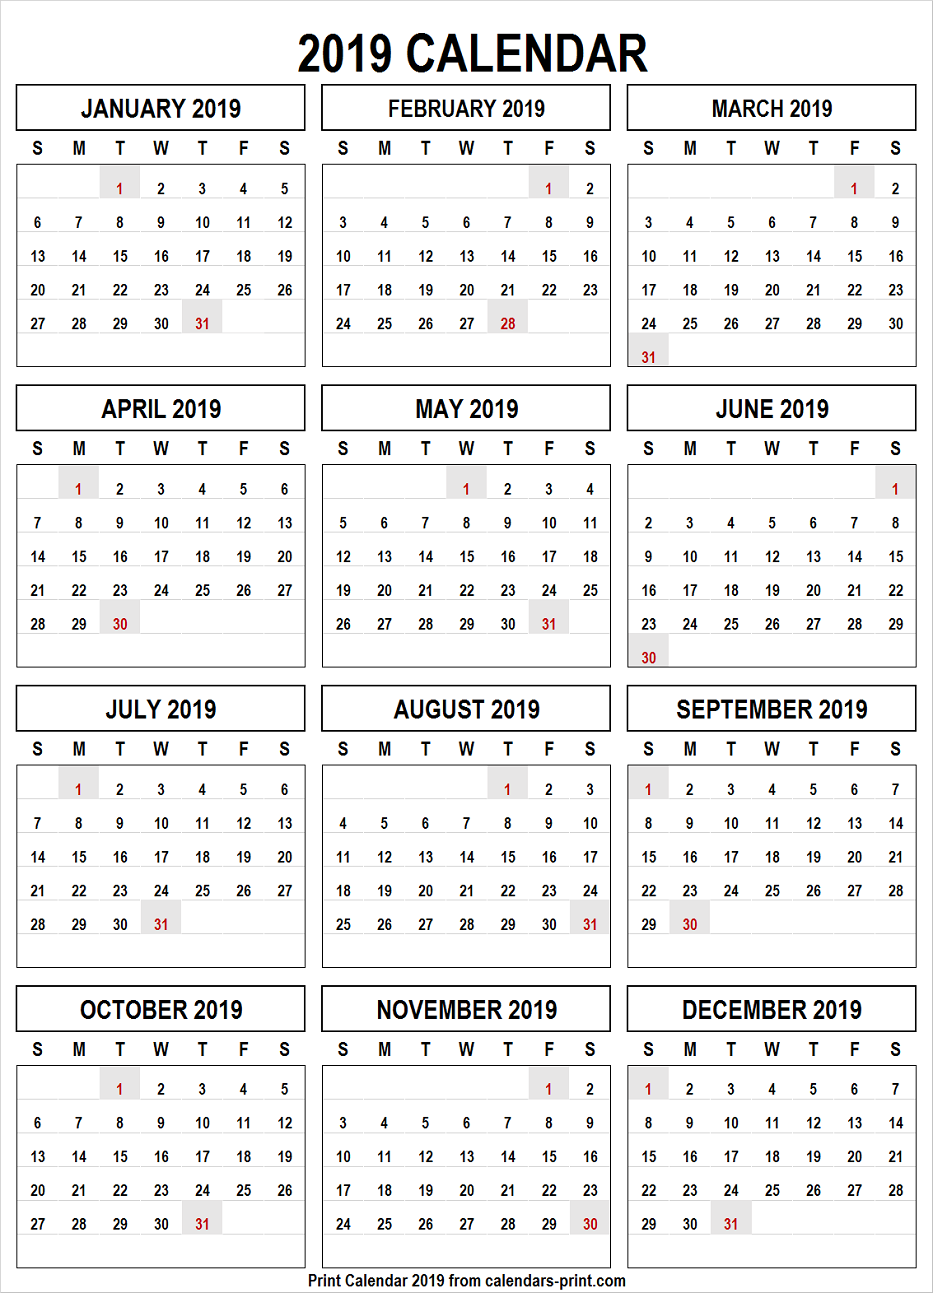 Calendar 2019 Png Free Download Template with Notes.